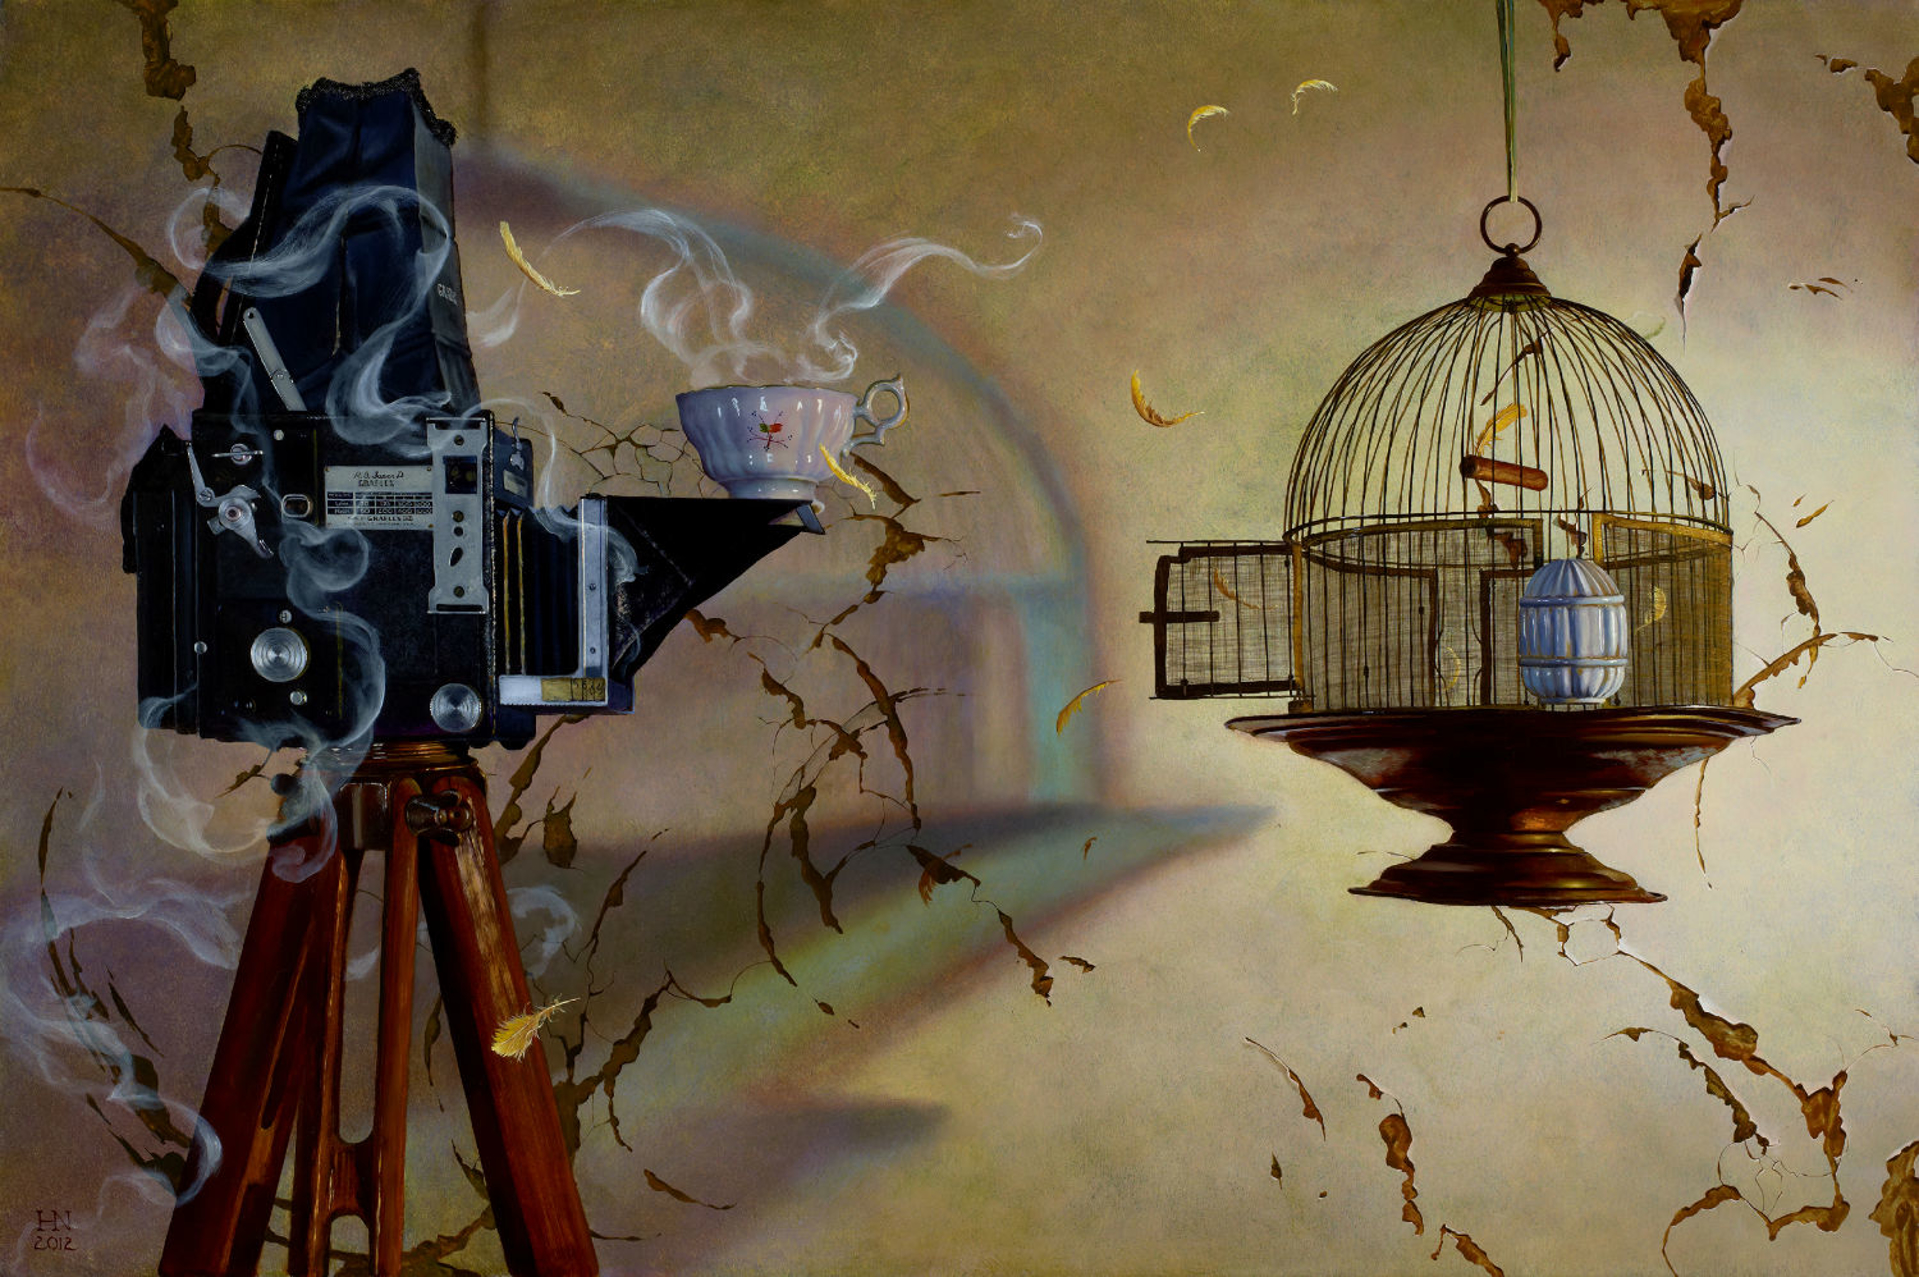 Camera Obscura by Heather Neill